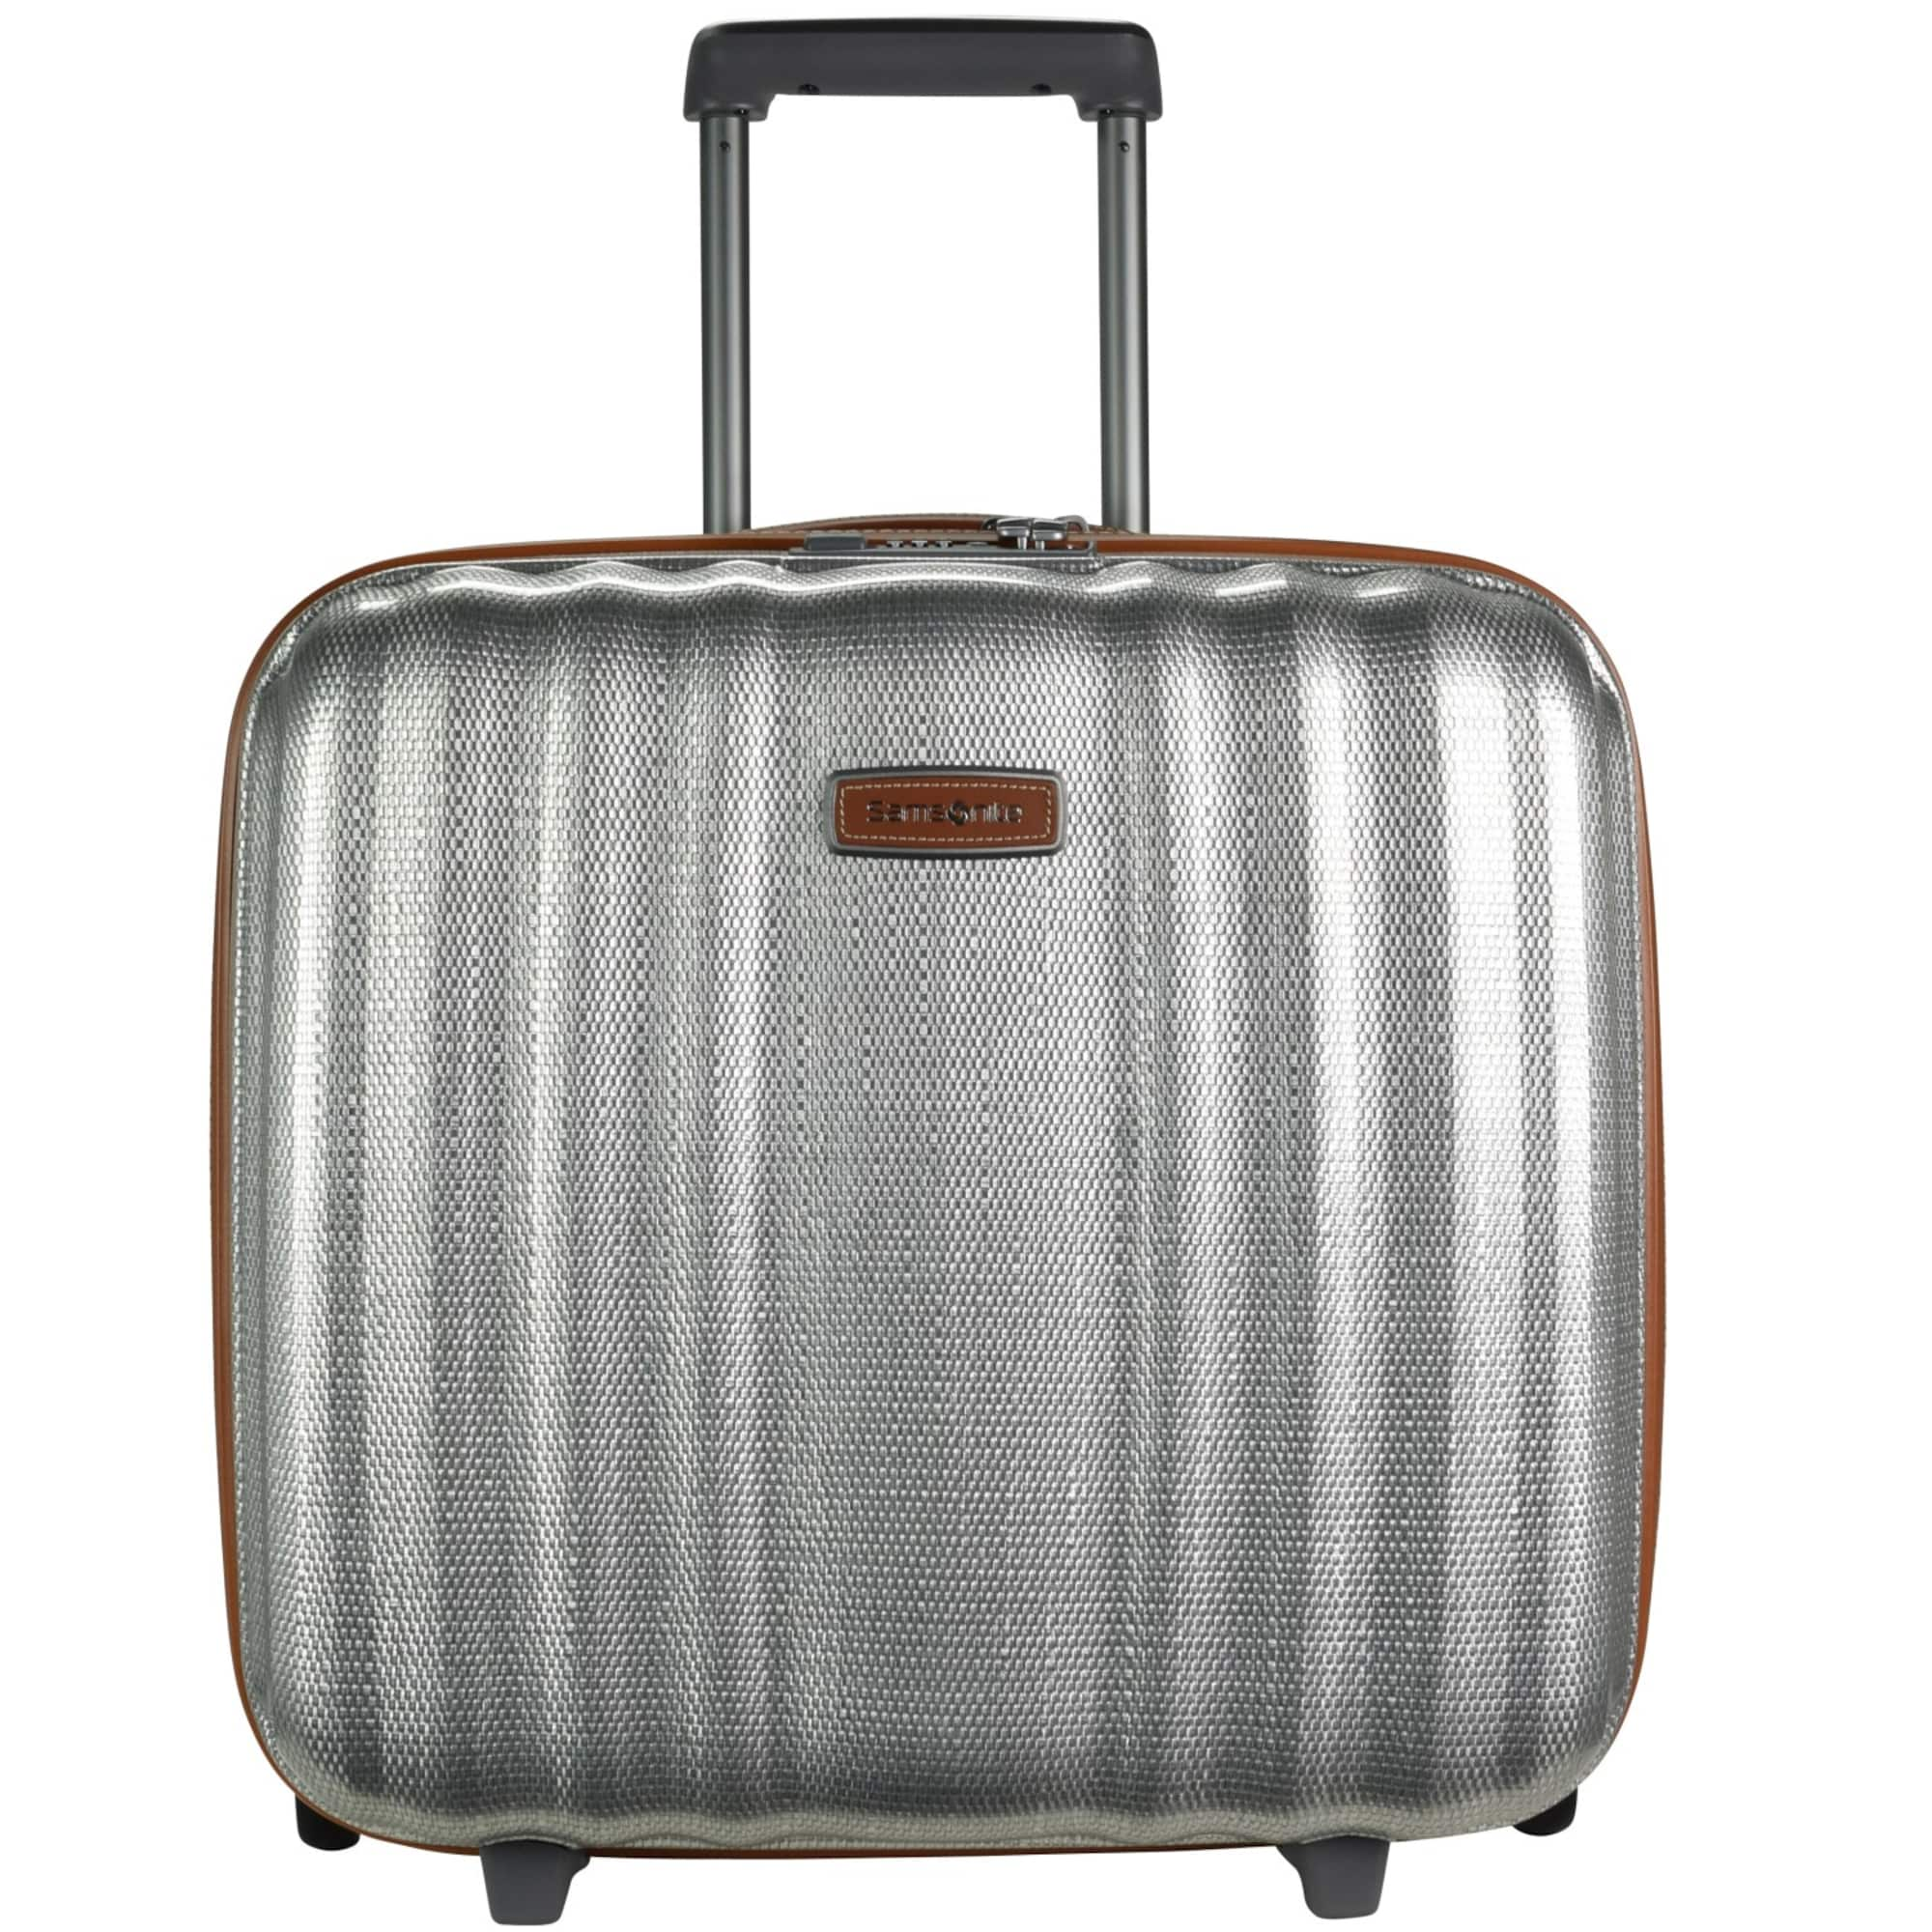 Lite-Cube DLX Upright 2-Rollen Businesstrolley 43 cm Laptopfach | Taschen > Businesstaschen > Business Trolleys | Silber | Samsonite